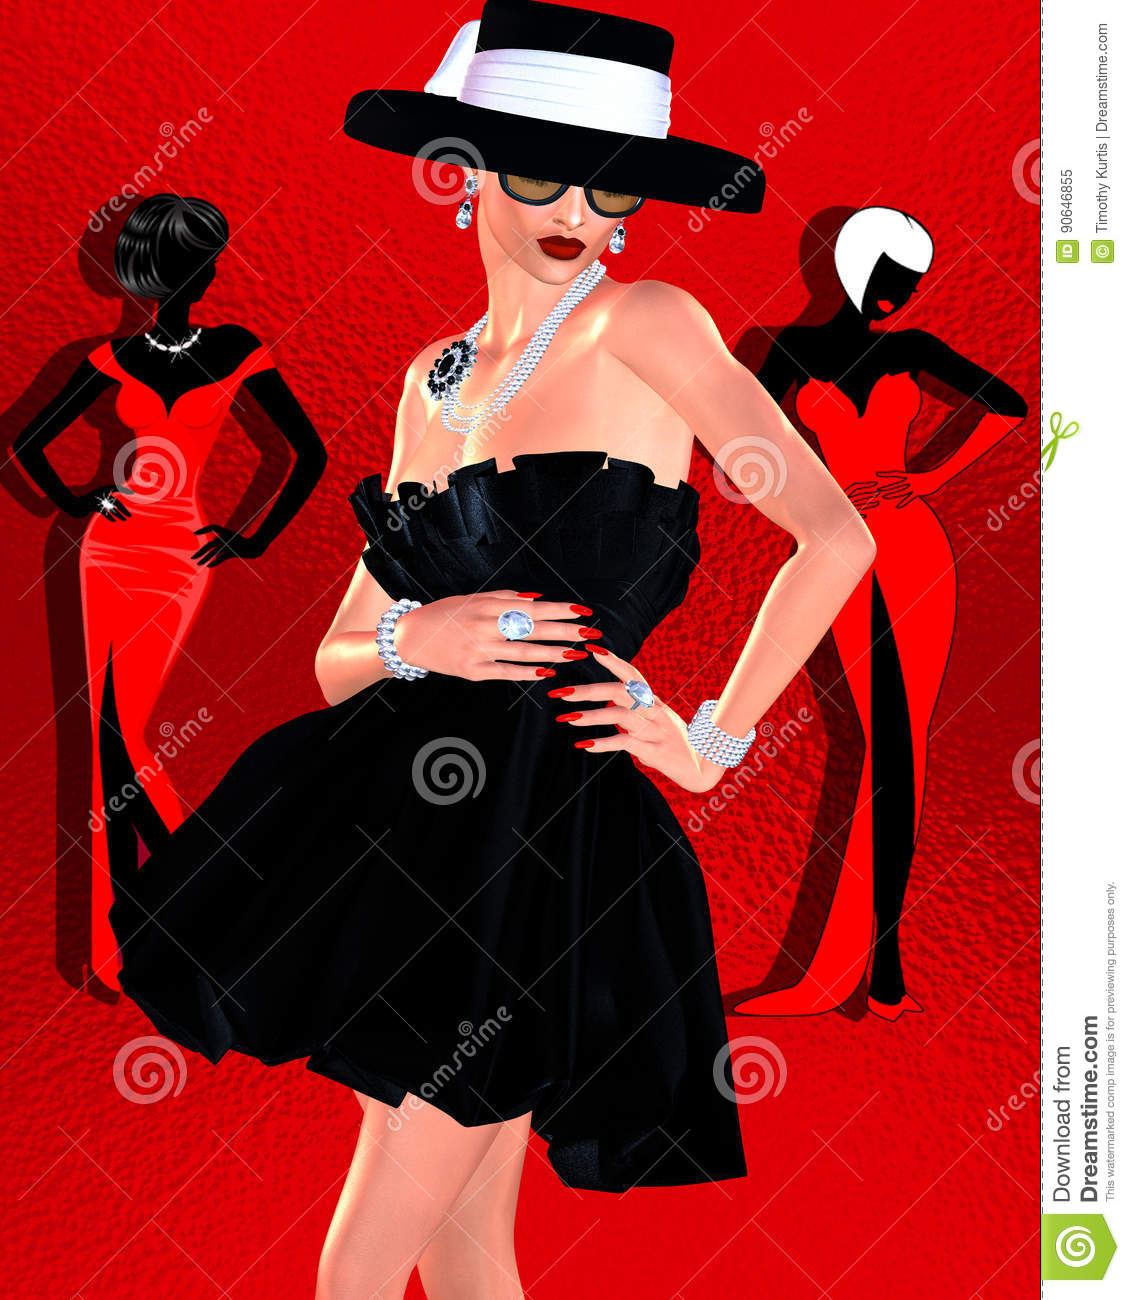 Fashion sketch,attractive woman in vintage style black dress and hat in our 3d render digital art style.